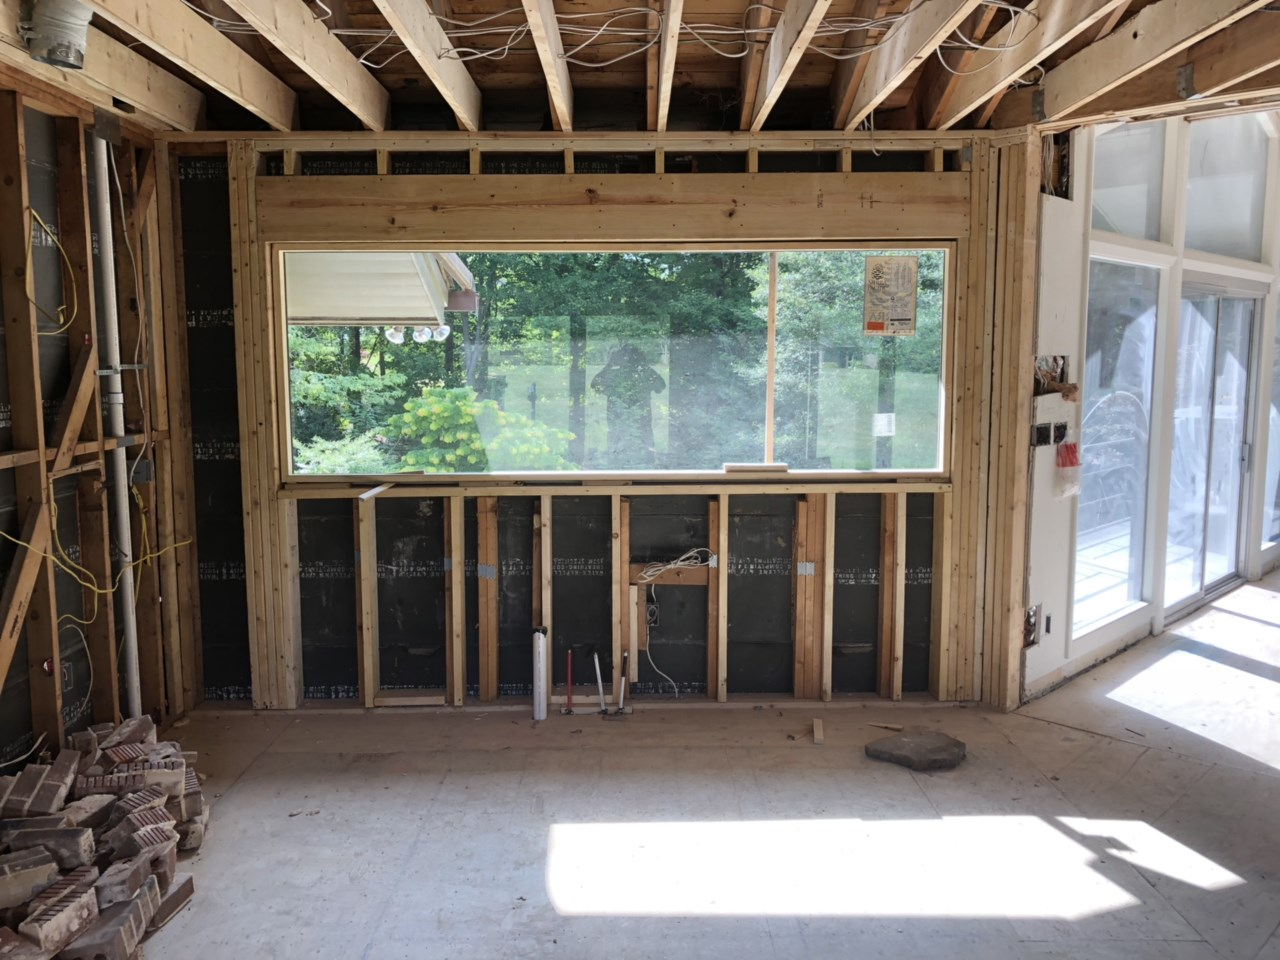 The kitchen will get plenty of natural light with this new window.